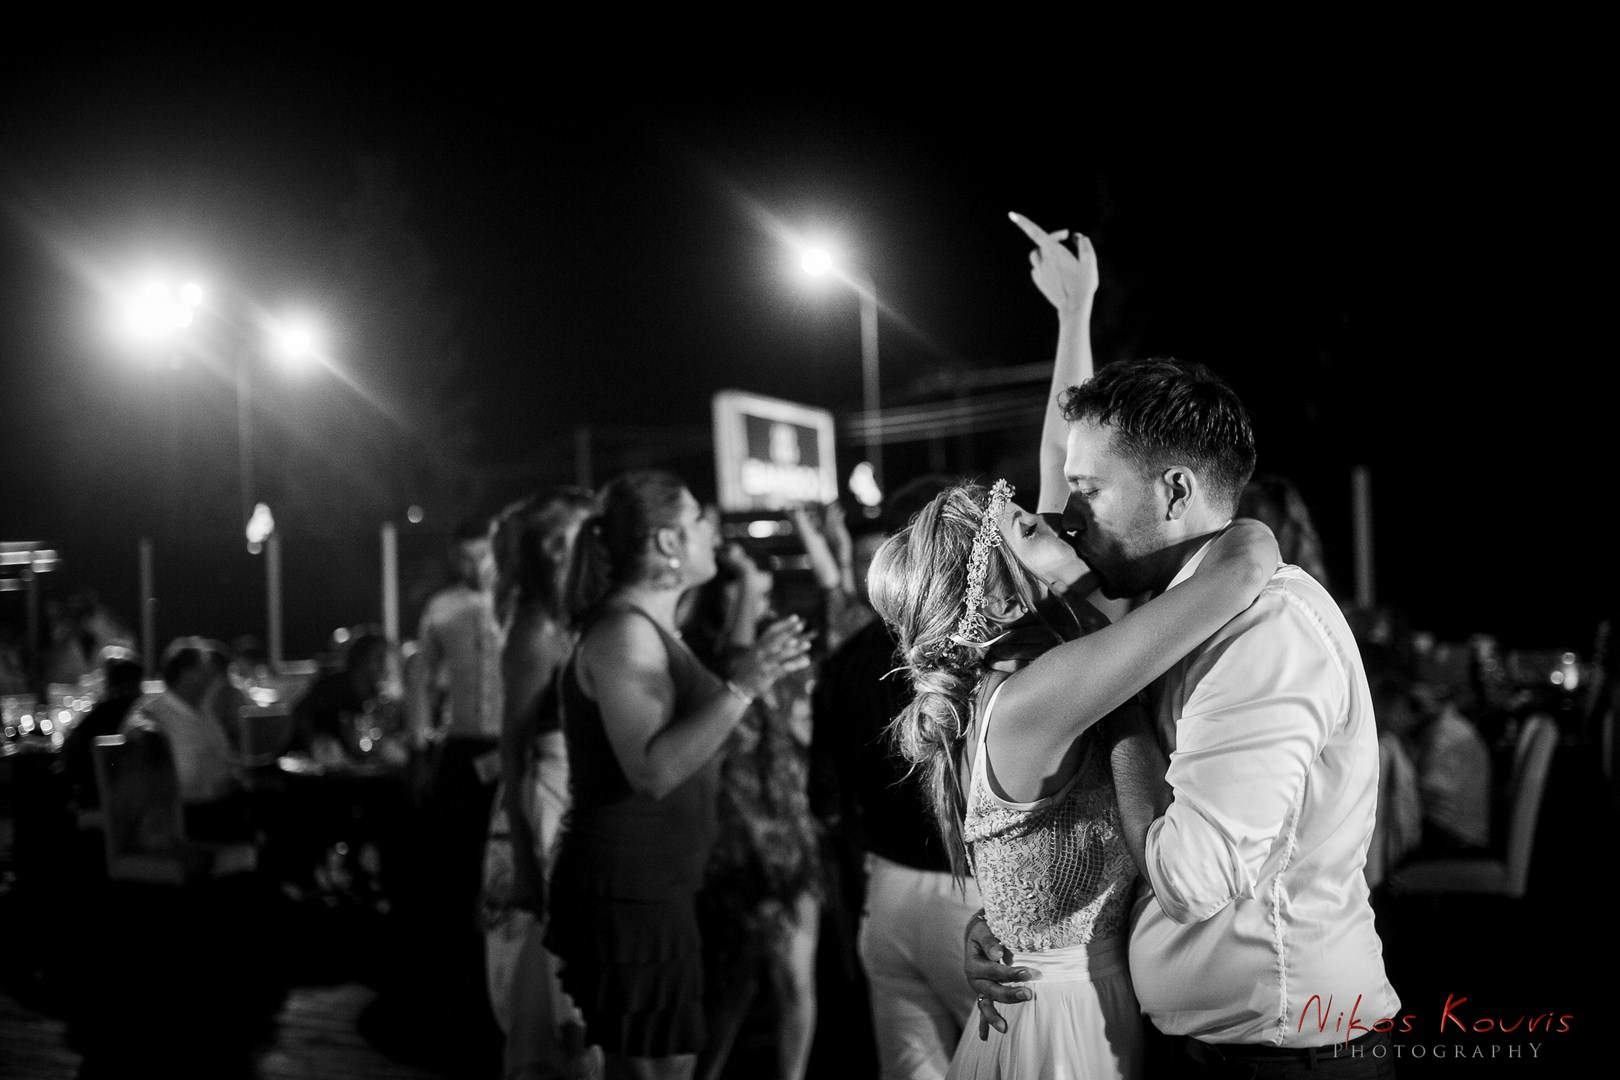 Nikos & Konstantina's wedding day..!